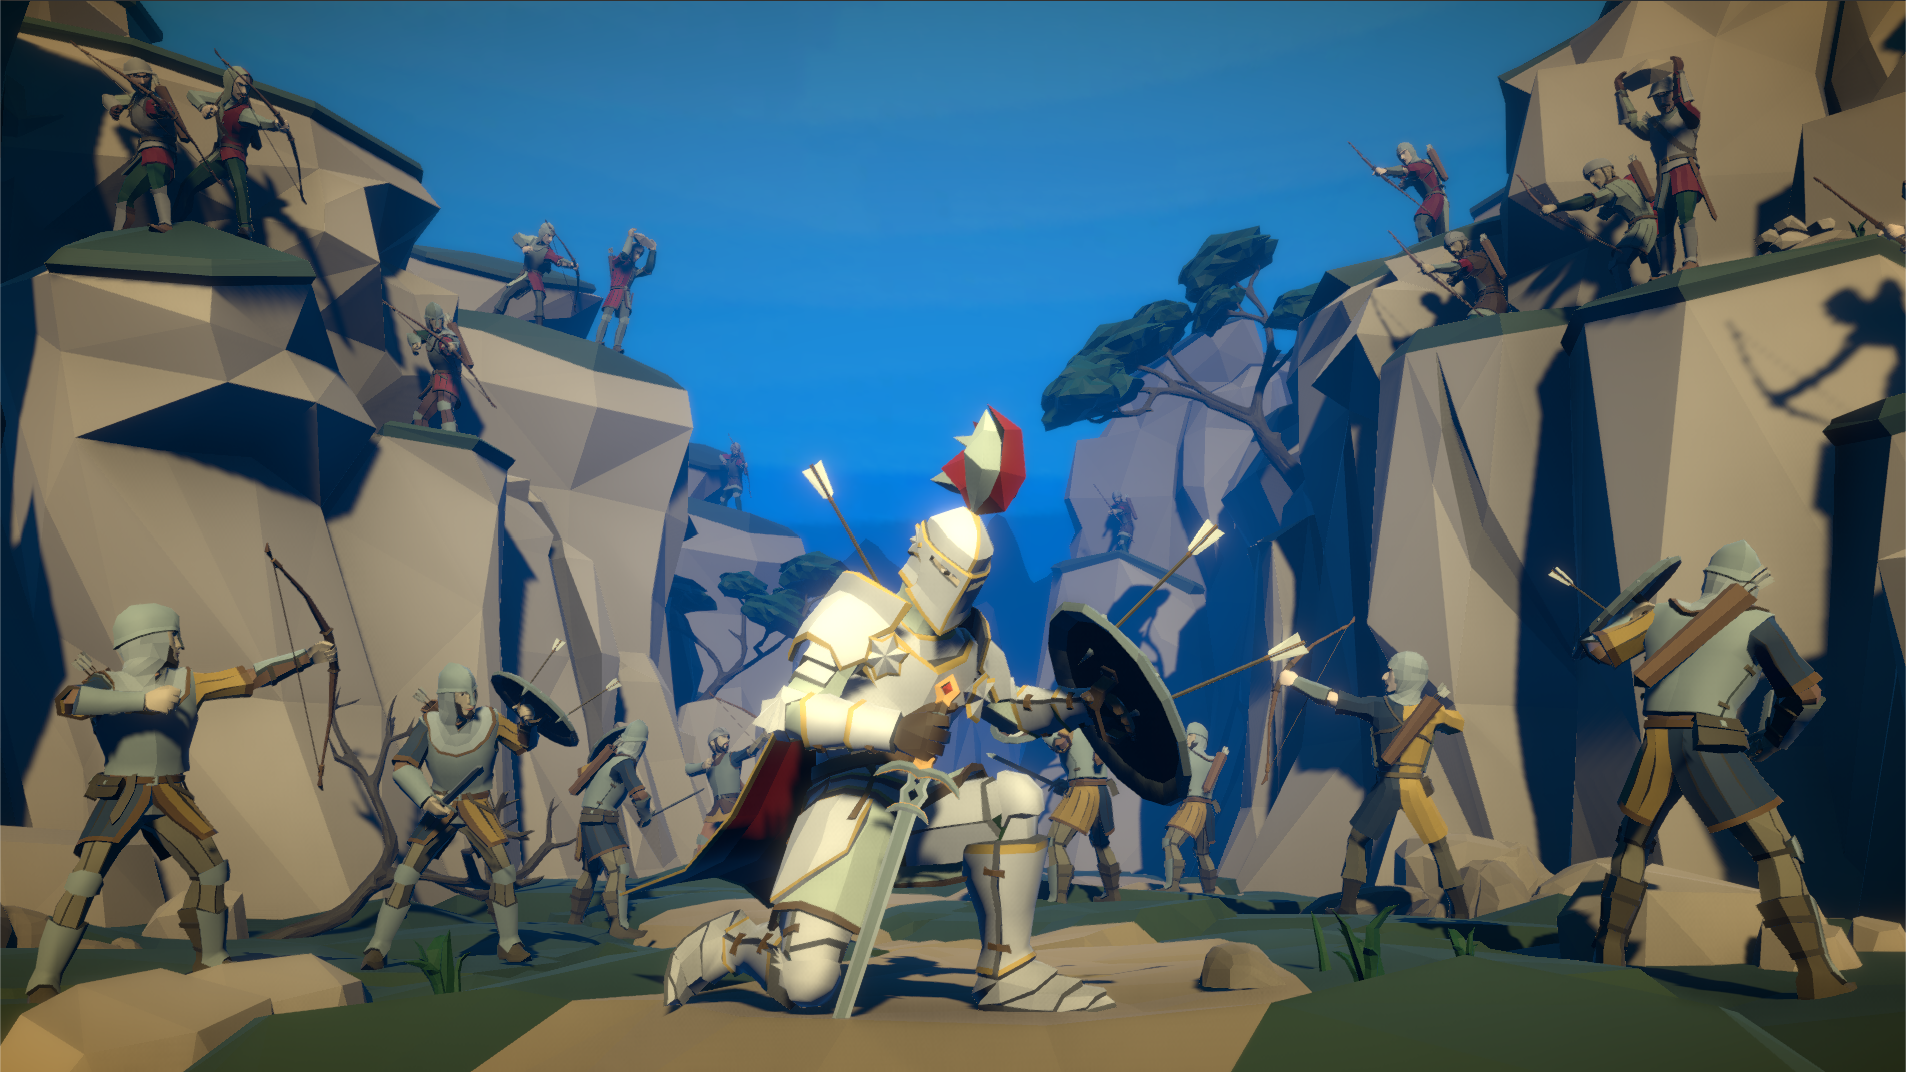 PT_Medieval_Lowpoly_Characters_Diorama.png